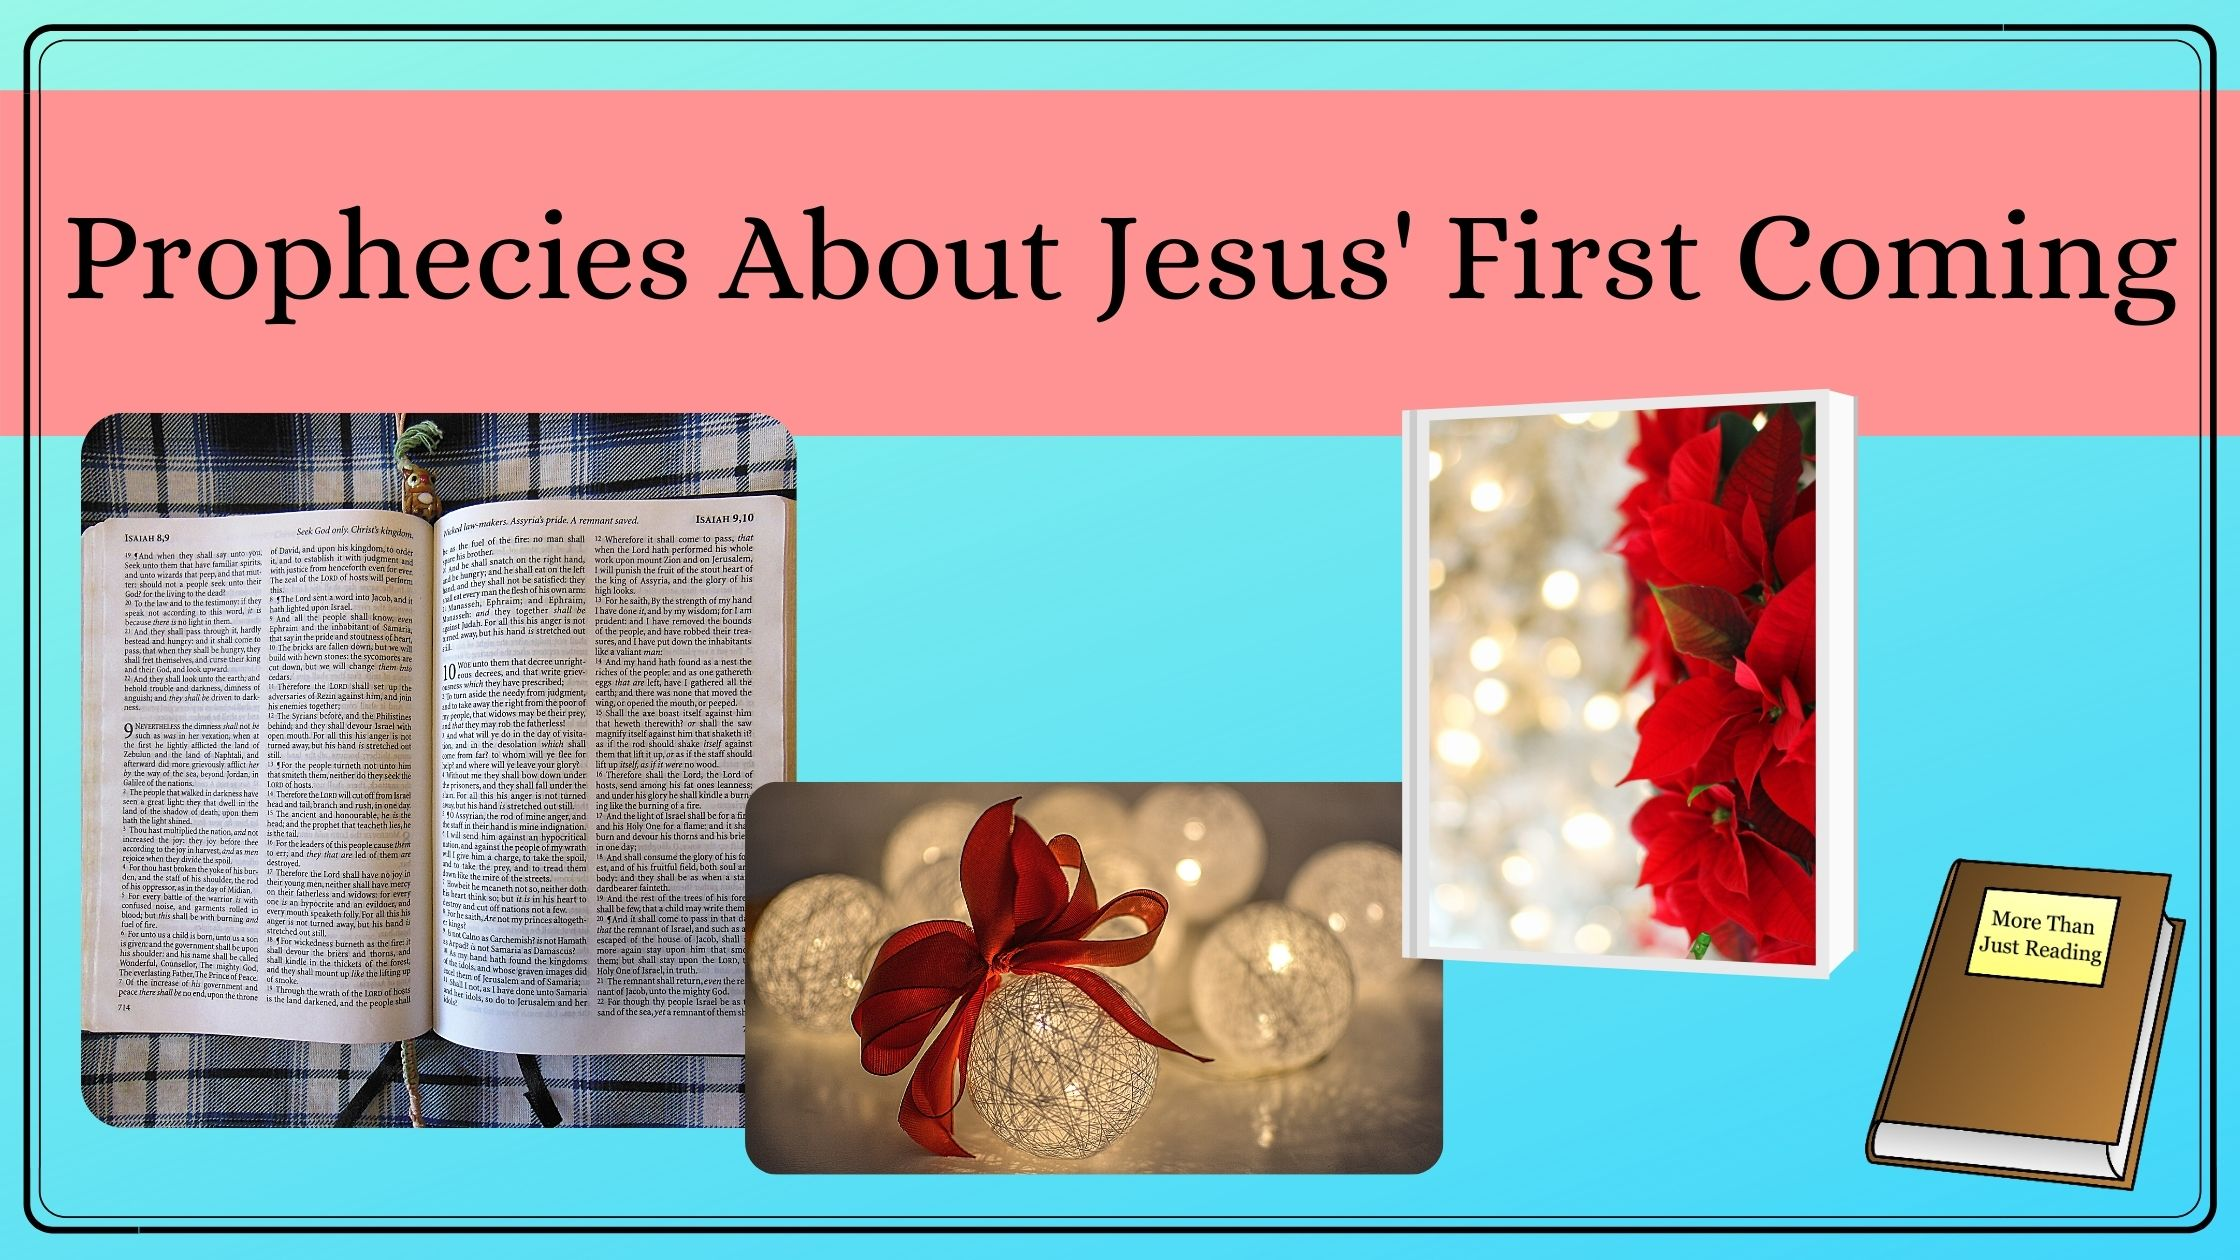 Prophecies about Jesus' first coming